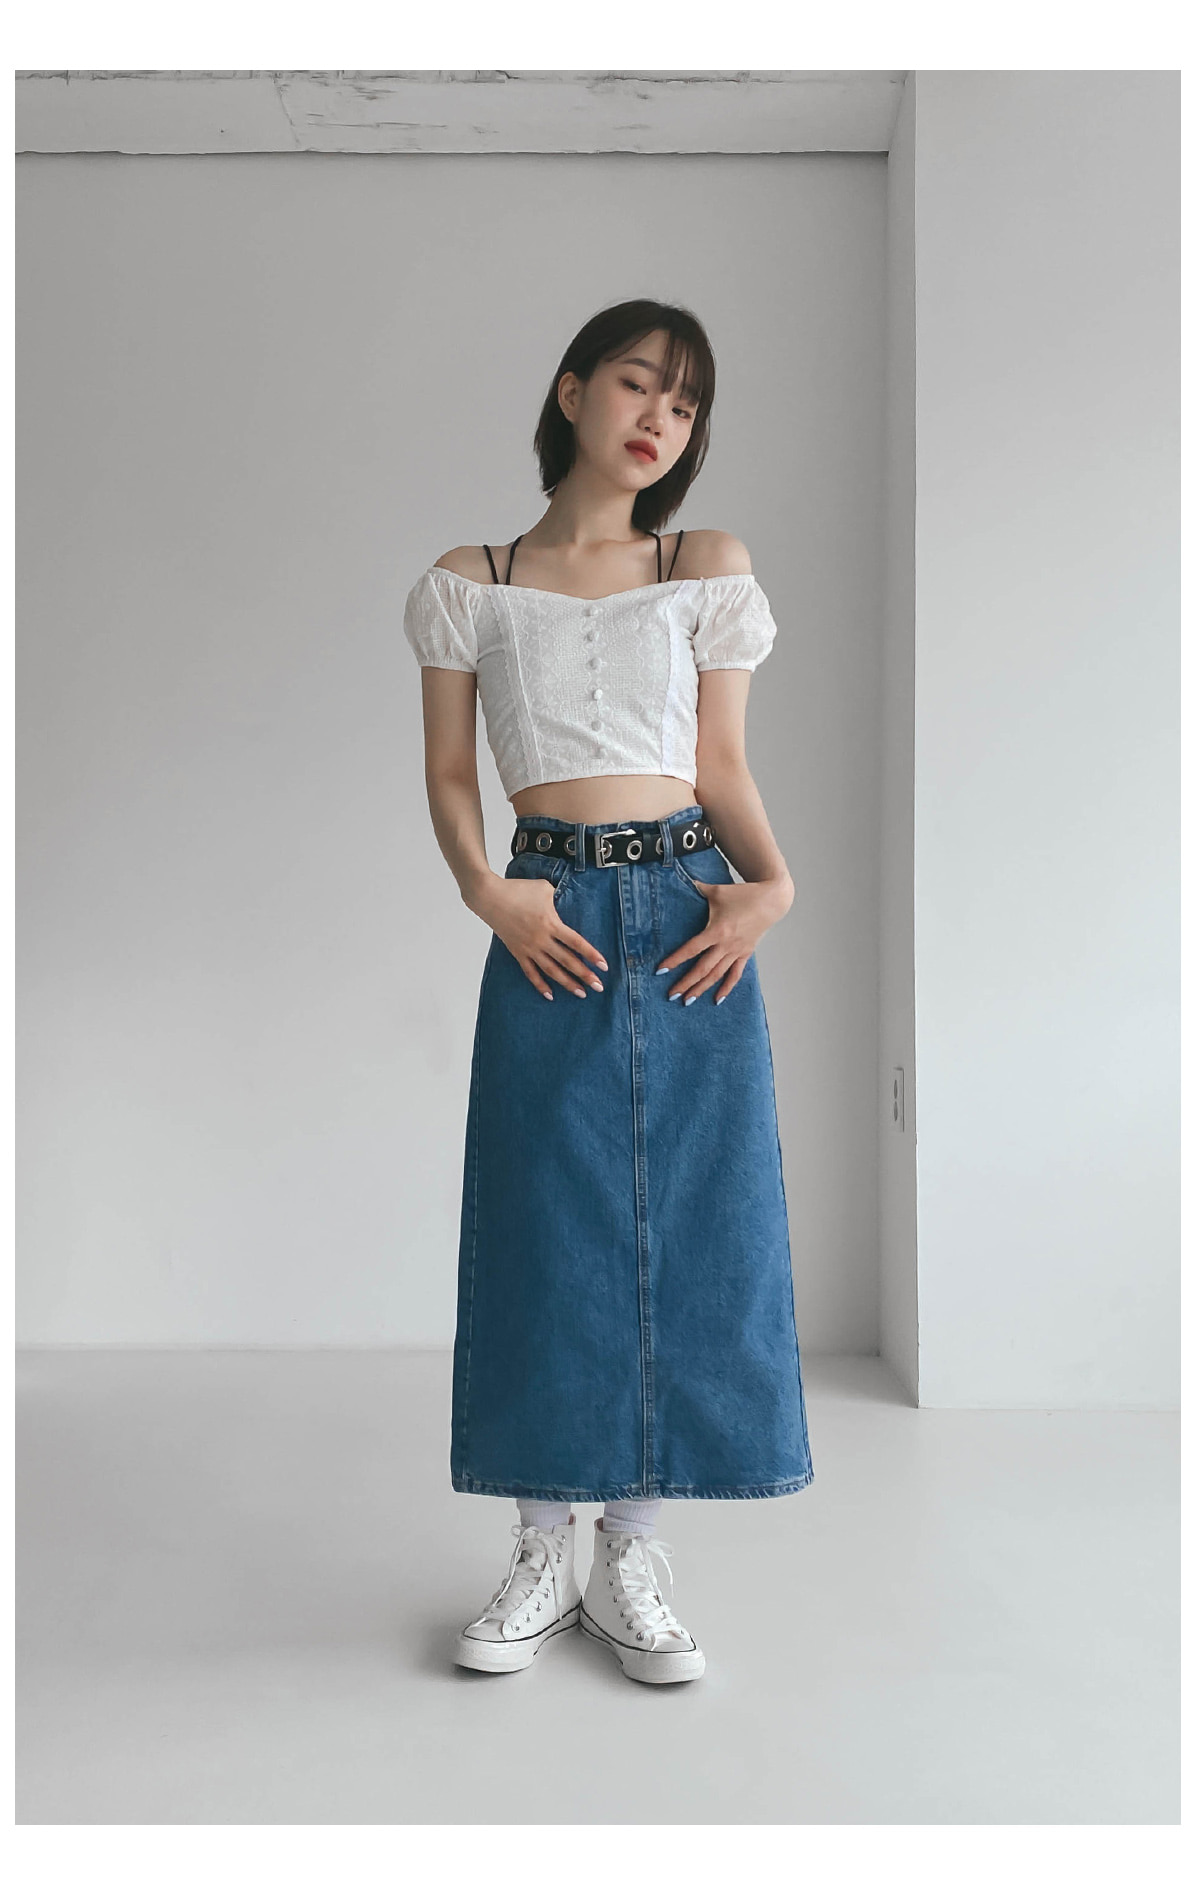 Long Eel denim skirt